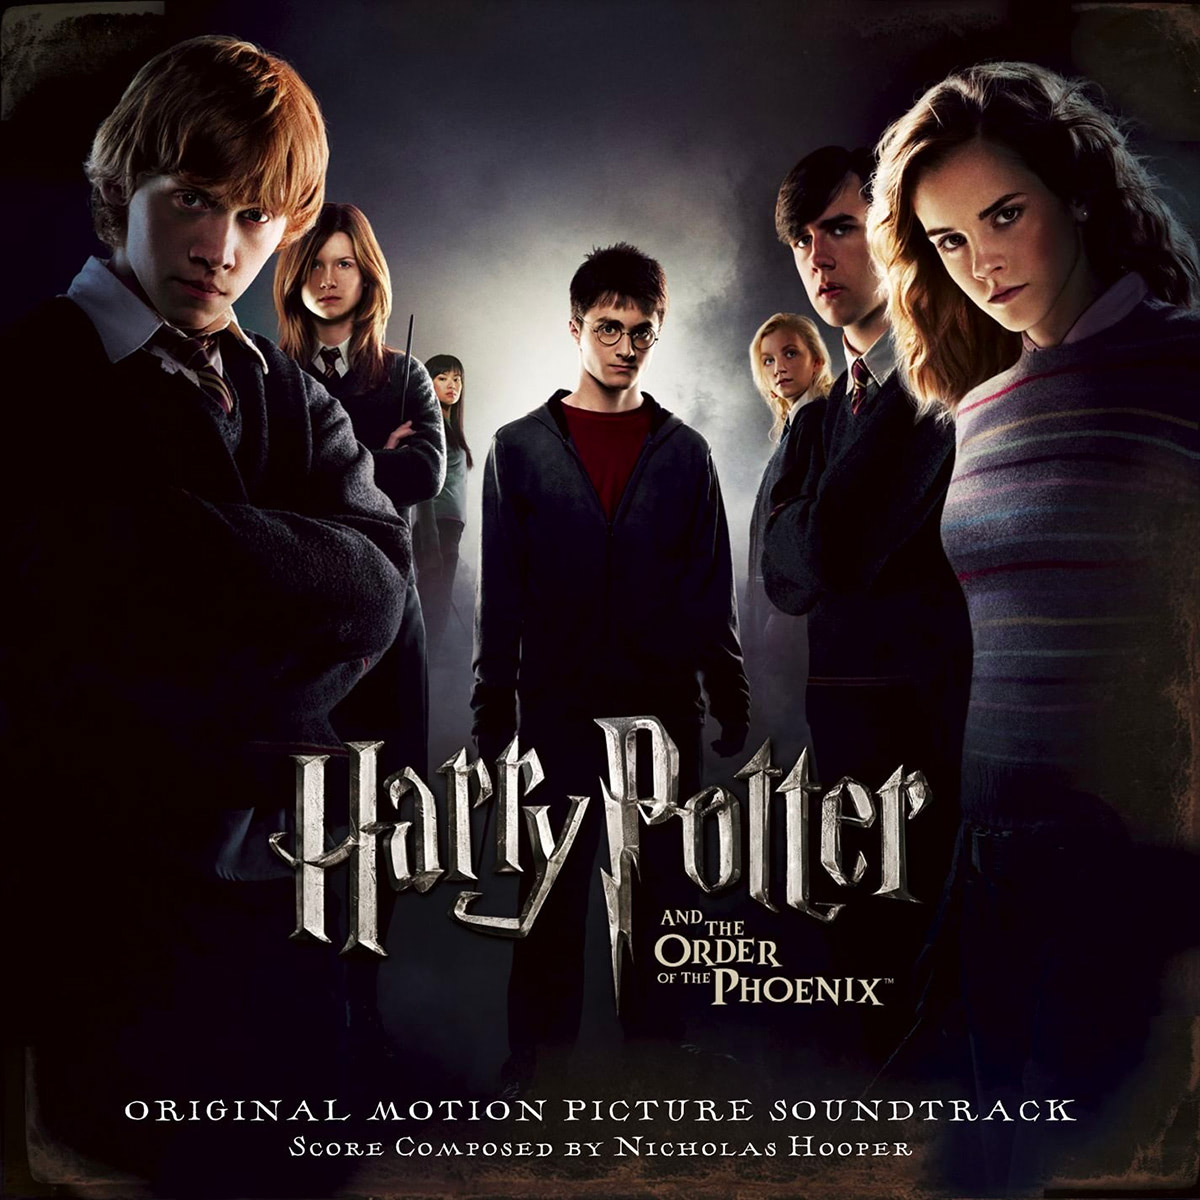 'Order of the Phoenix' soundtrack